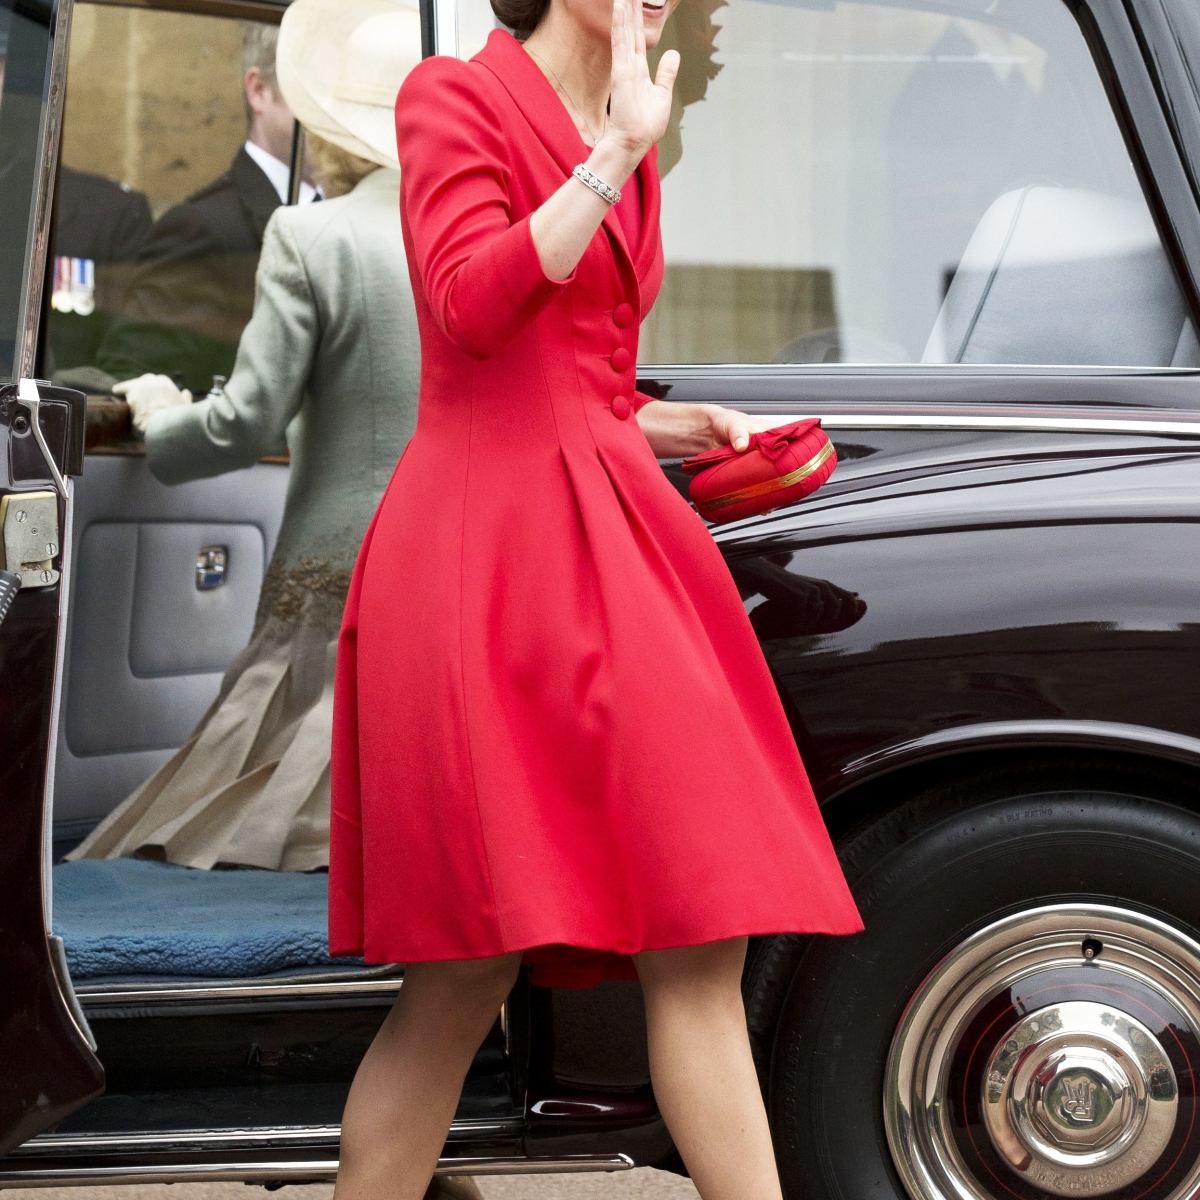 cd4effc79670 Kate Middleton Wows in 8 Outfits Over 7 Days — See Her Stunning Summer Style!  - Closer Weekly